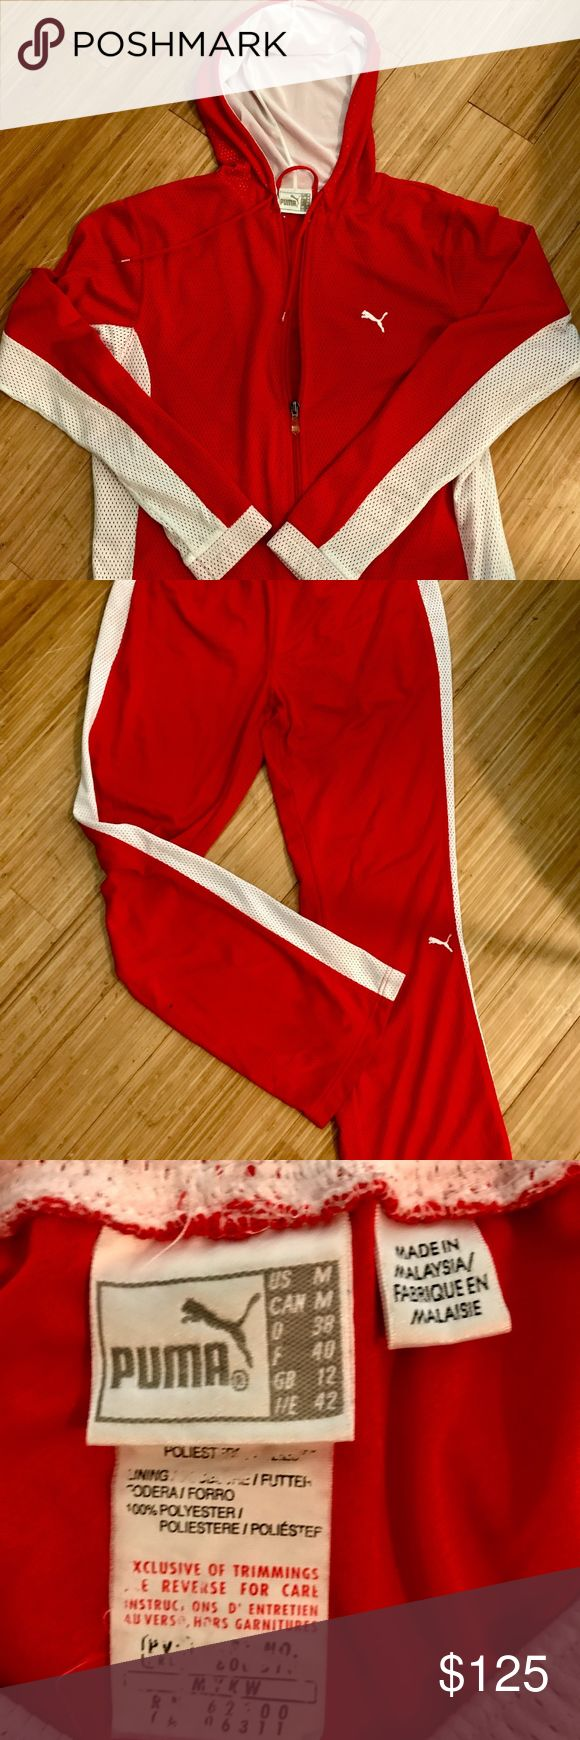 Vintage Puma Hot Red Women's Medium Athletic Suit. In incredible condition!  Mesh outer.  Lined.  Light weight for after your workout.    Super soft fabric.   All ties intact.  Zipper works perfectly.  No stains or tears.    You will be hard-pressed to find another one like this! Well worth the investment! Puma Pants Track Pants & Joggers